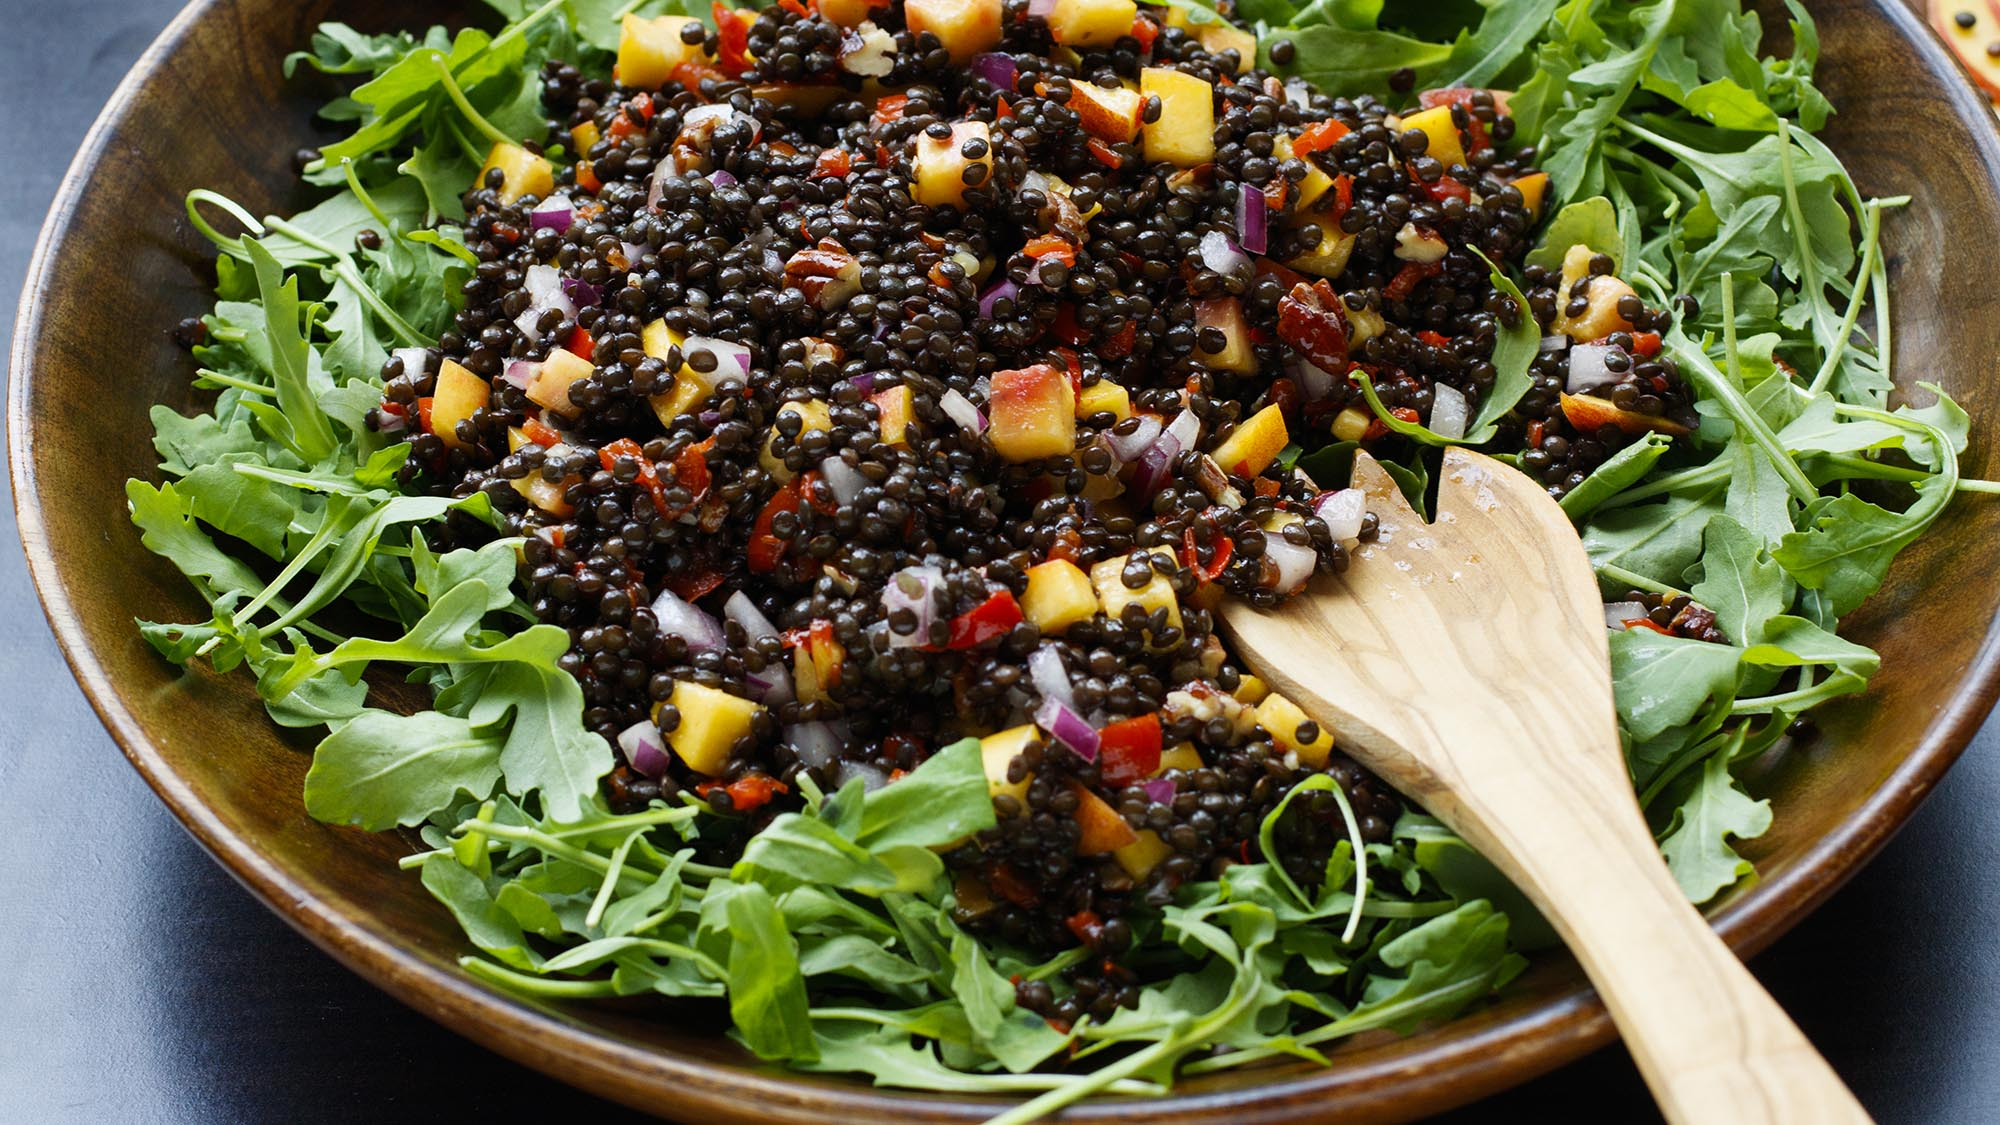 Lentil_and_peach_salad_with_tarragon_mustard_vinaigrette_2000x1125.jpg